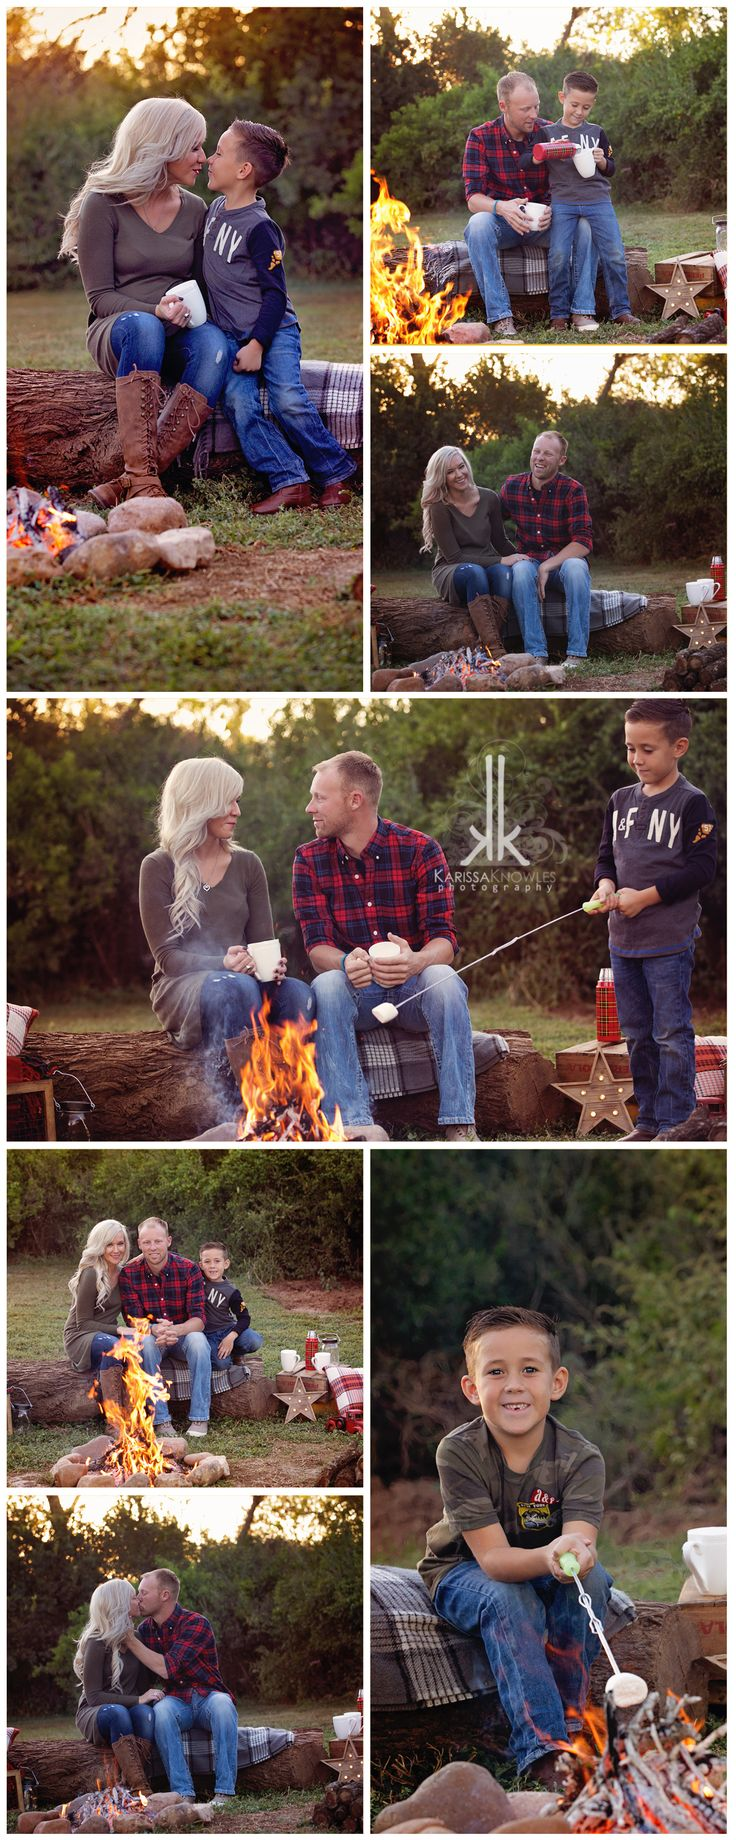 Family Campfire Mini, Fall Family session, Campfire session, Smore's Country Session, Christmas Session Fashion Ideas, Family of 3 Karissa Knowles Photography www.karissaknowlesphotography.com